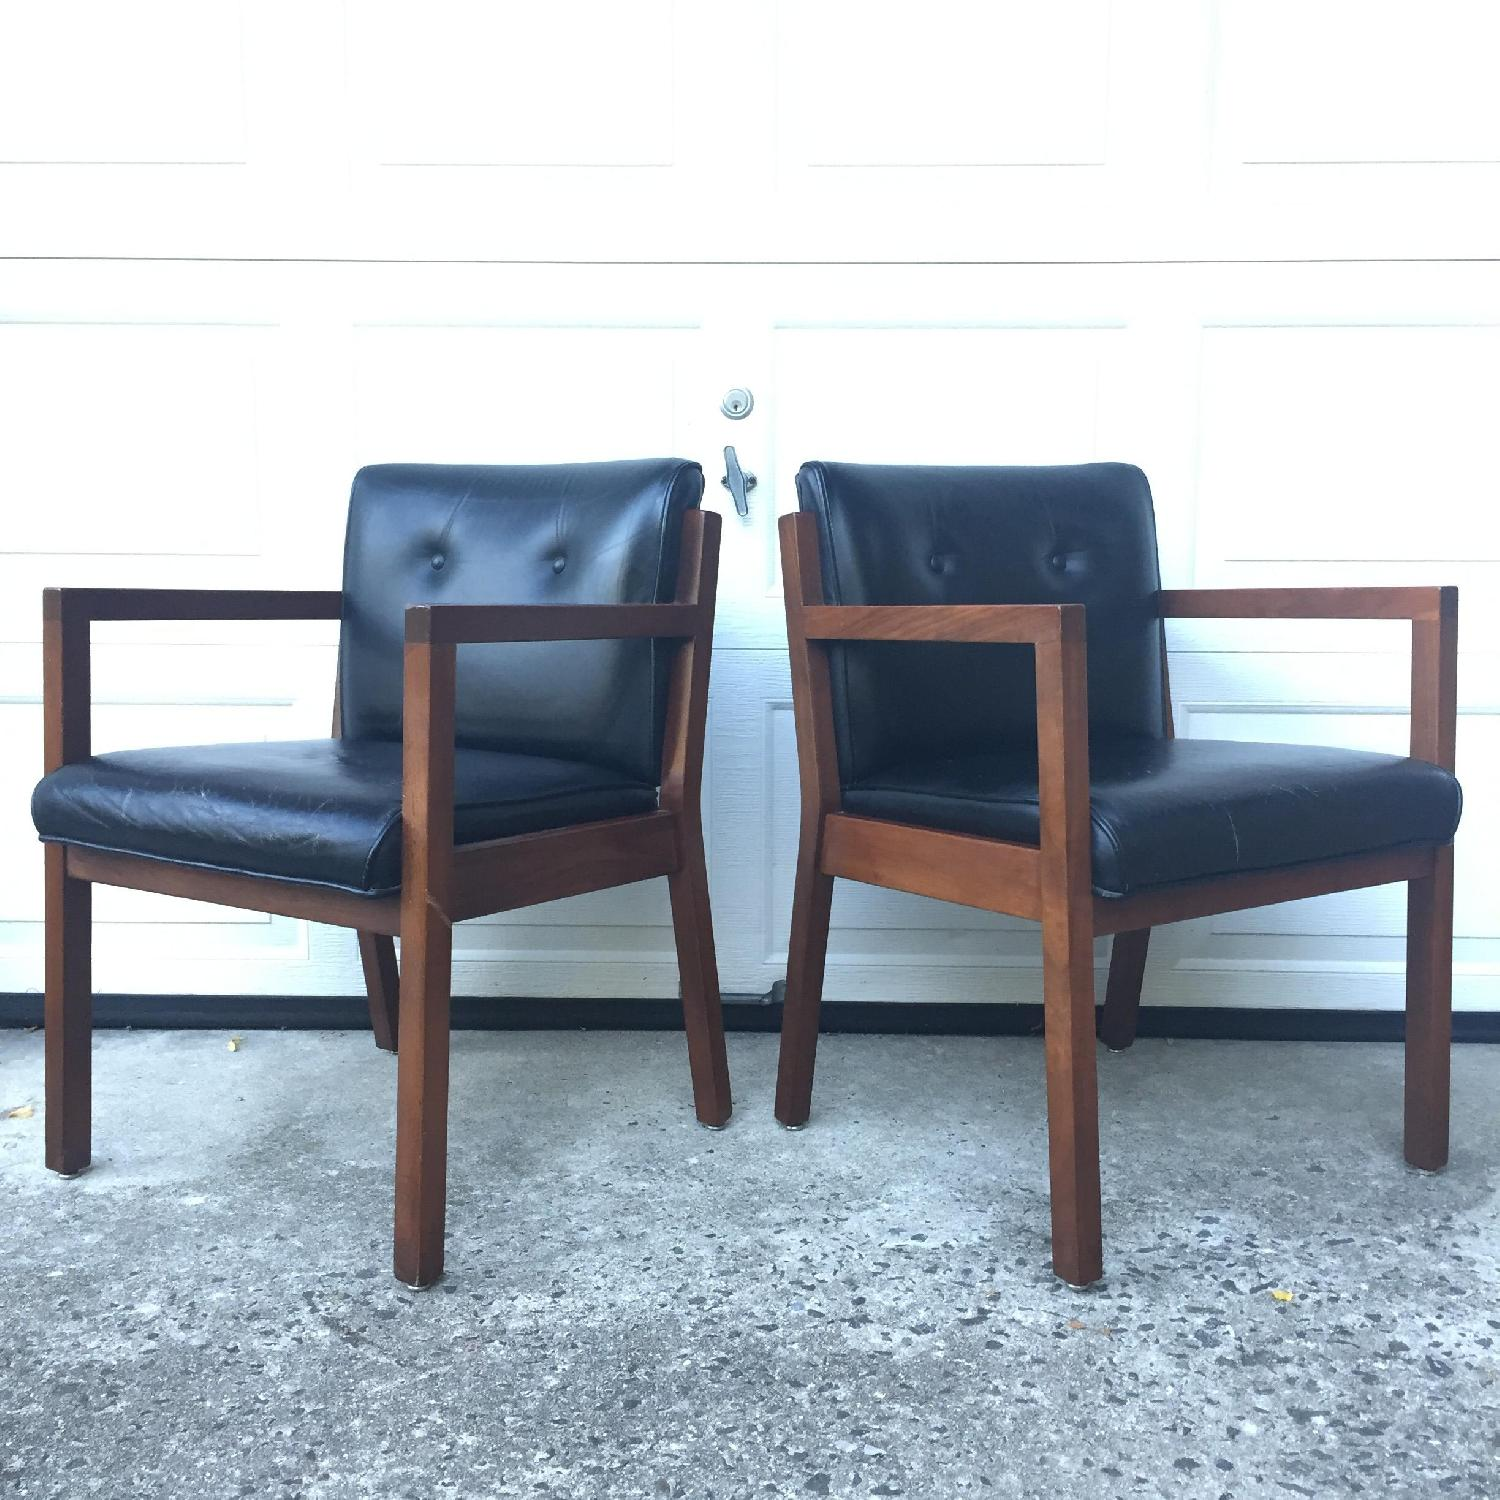 Jasper Chair Company Mid Century Modern Walnut Frame Chairs - Pair - image-10